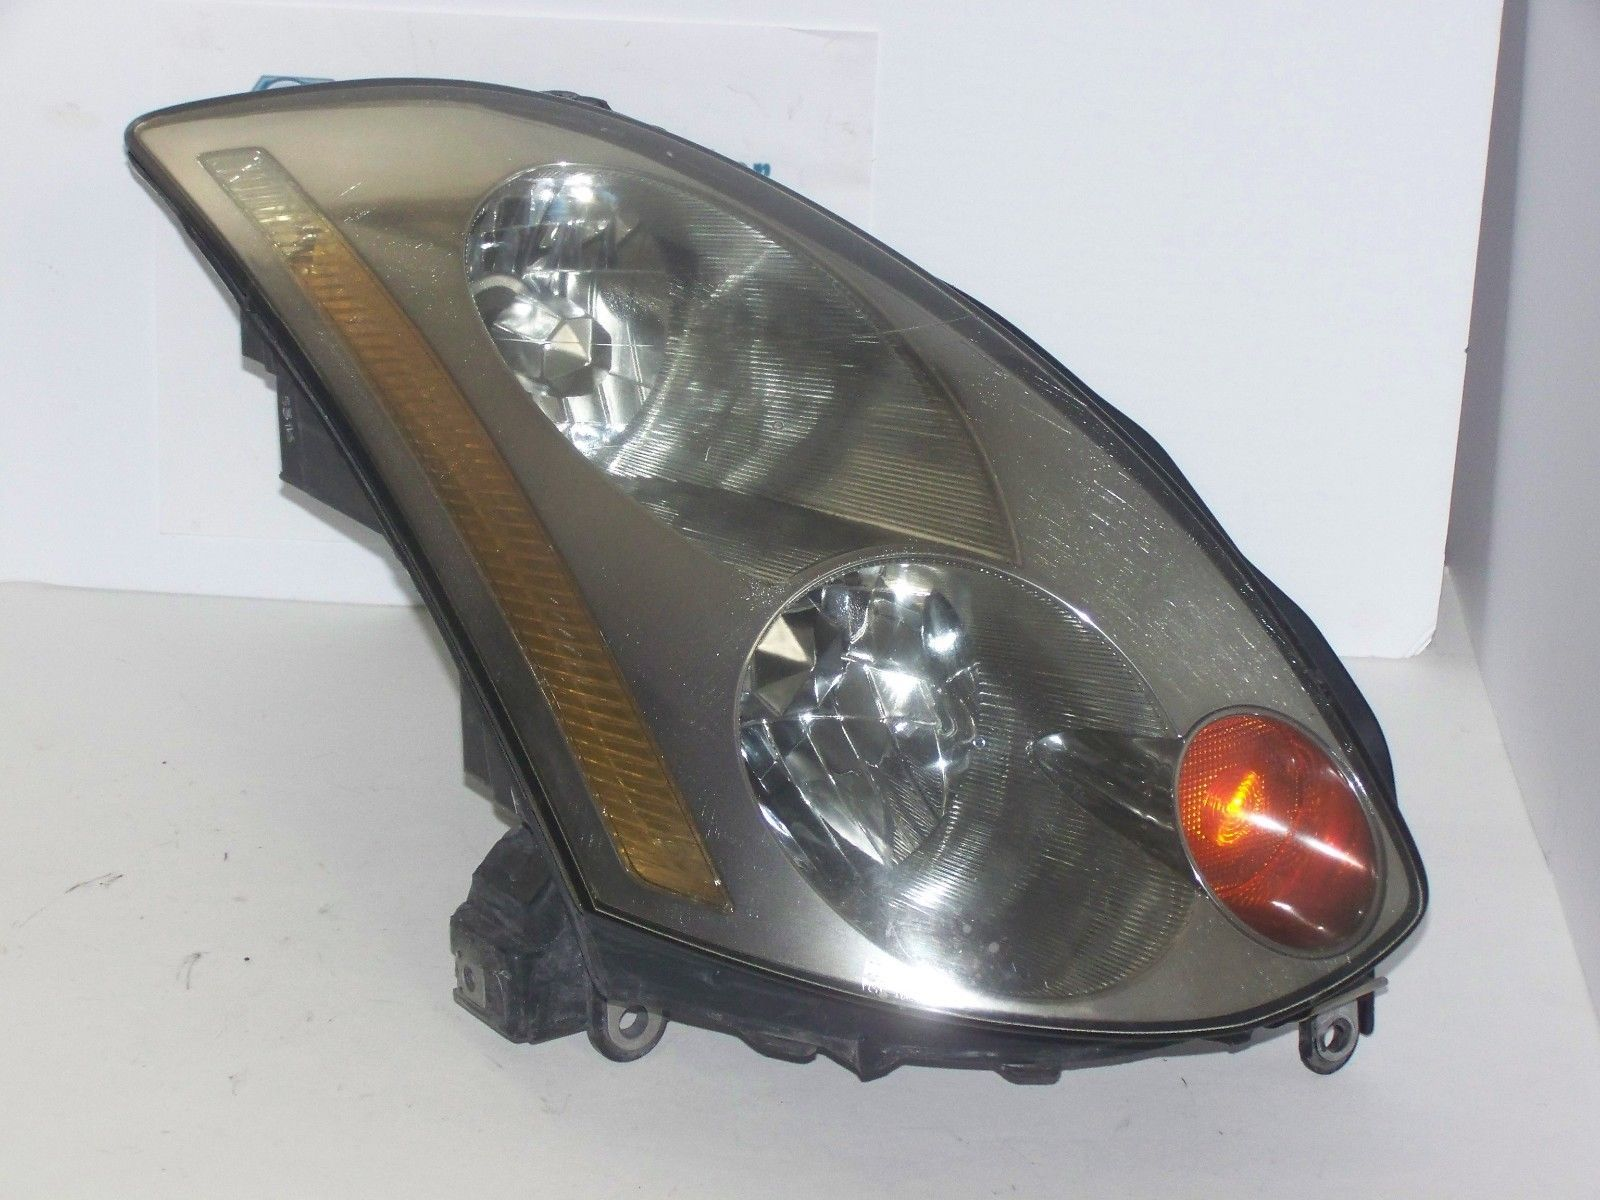 medium resolution of 03 05 infiniti g35 coupe convertible hid headlight assembly right rh oem rightchoiceharbor